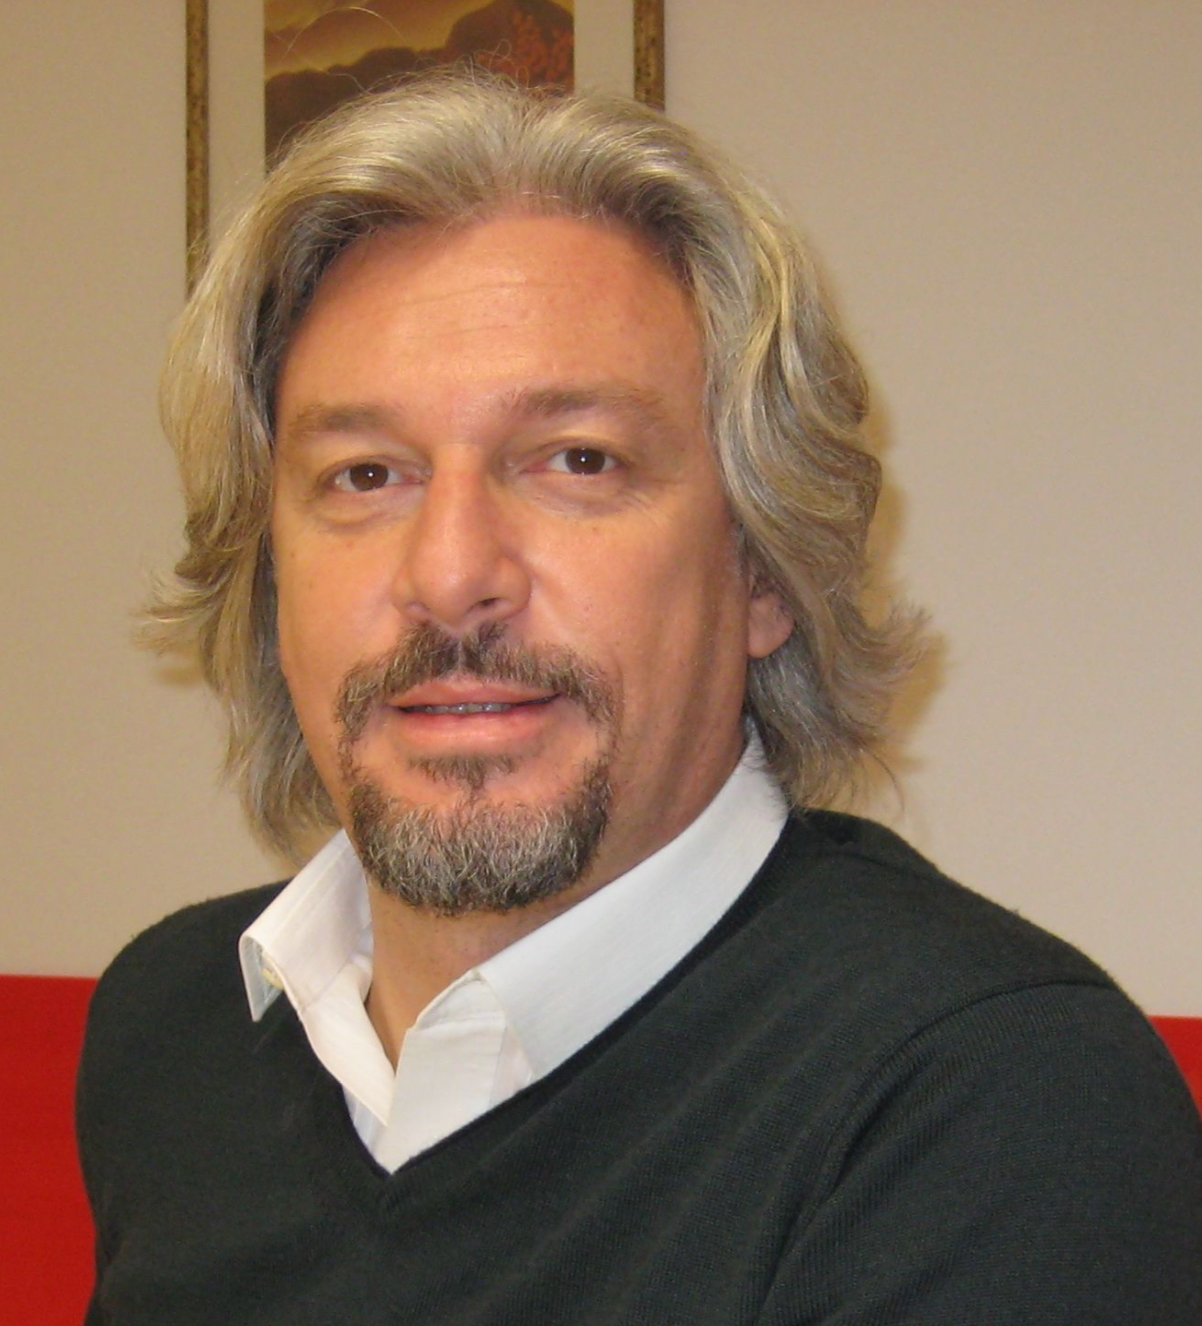 Stefano Cainelli